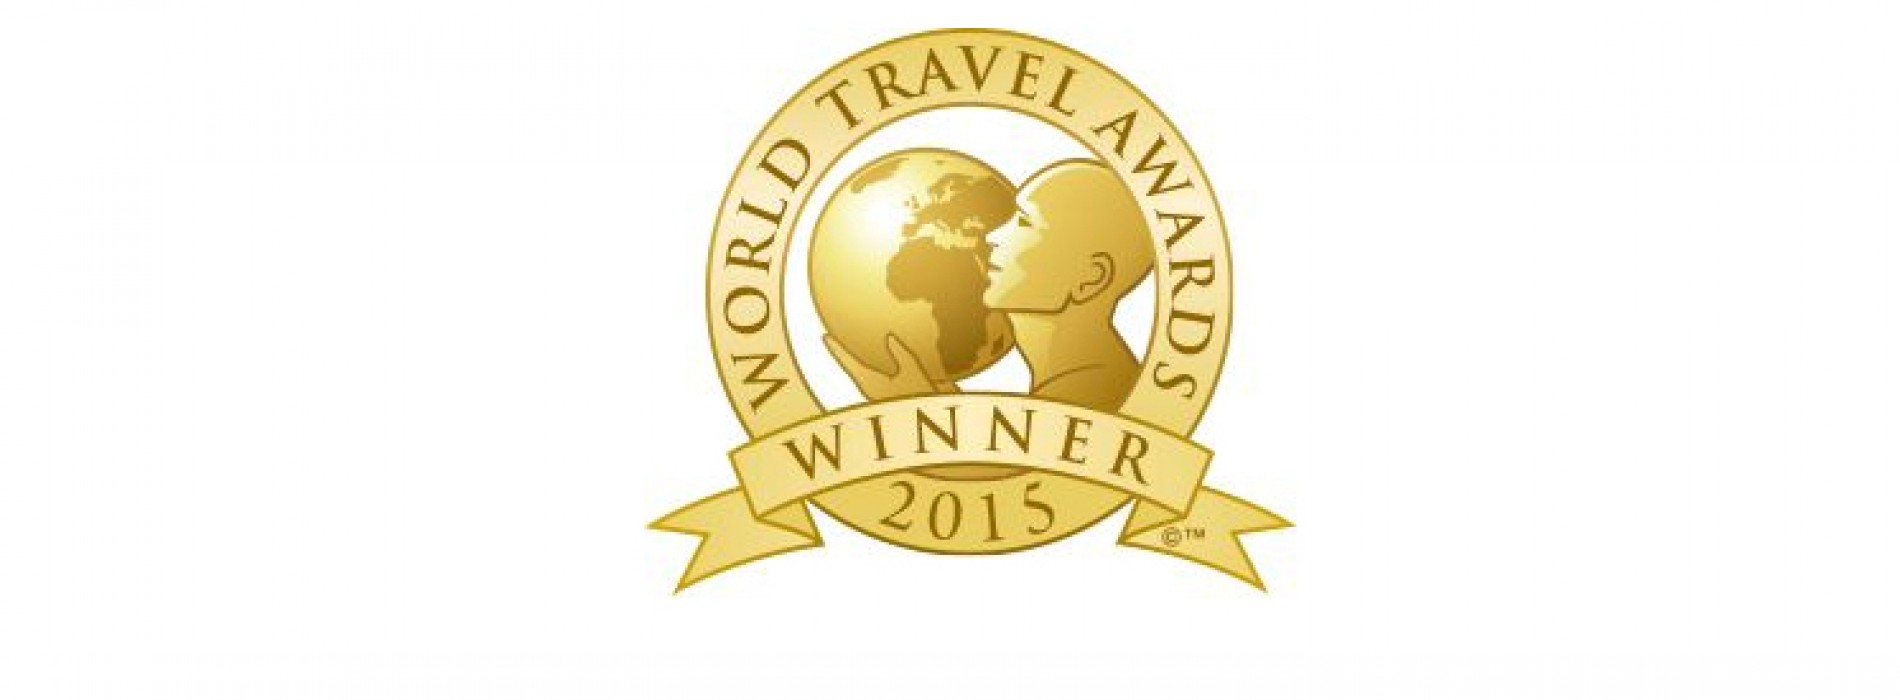 World Travel Awards recognises Layana Resort as Asia's Leading Spa Resort